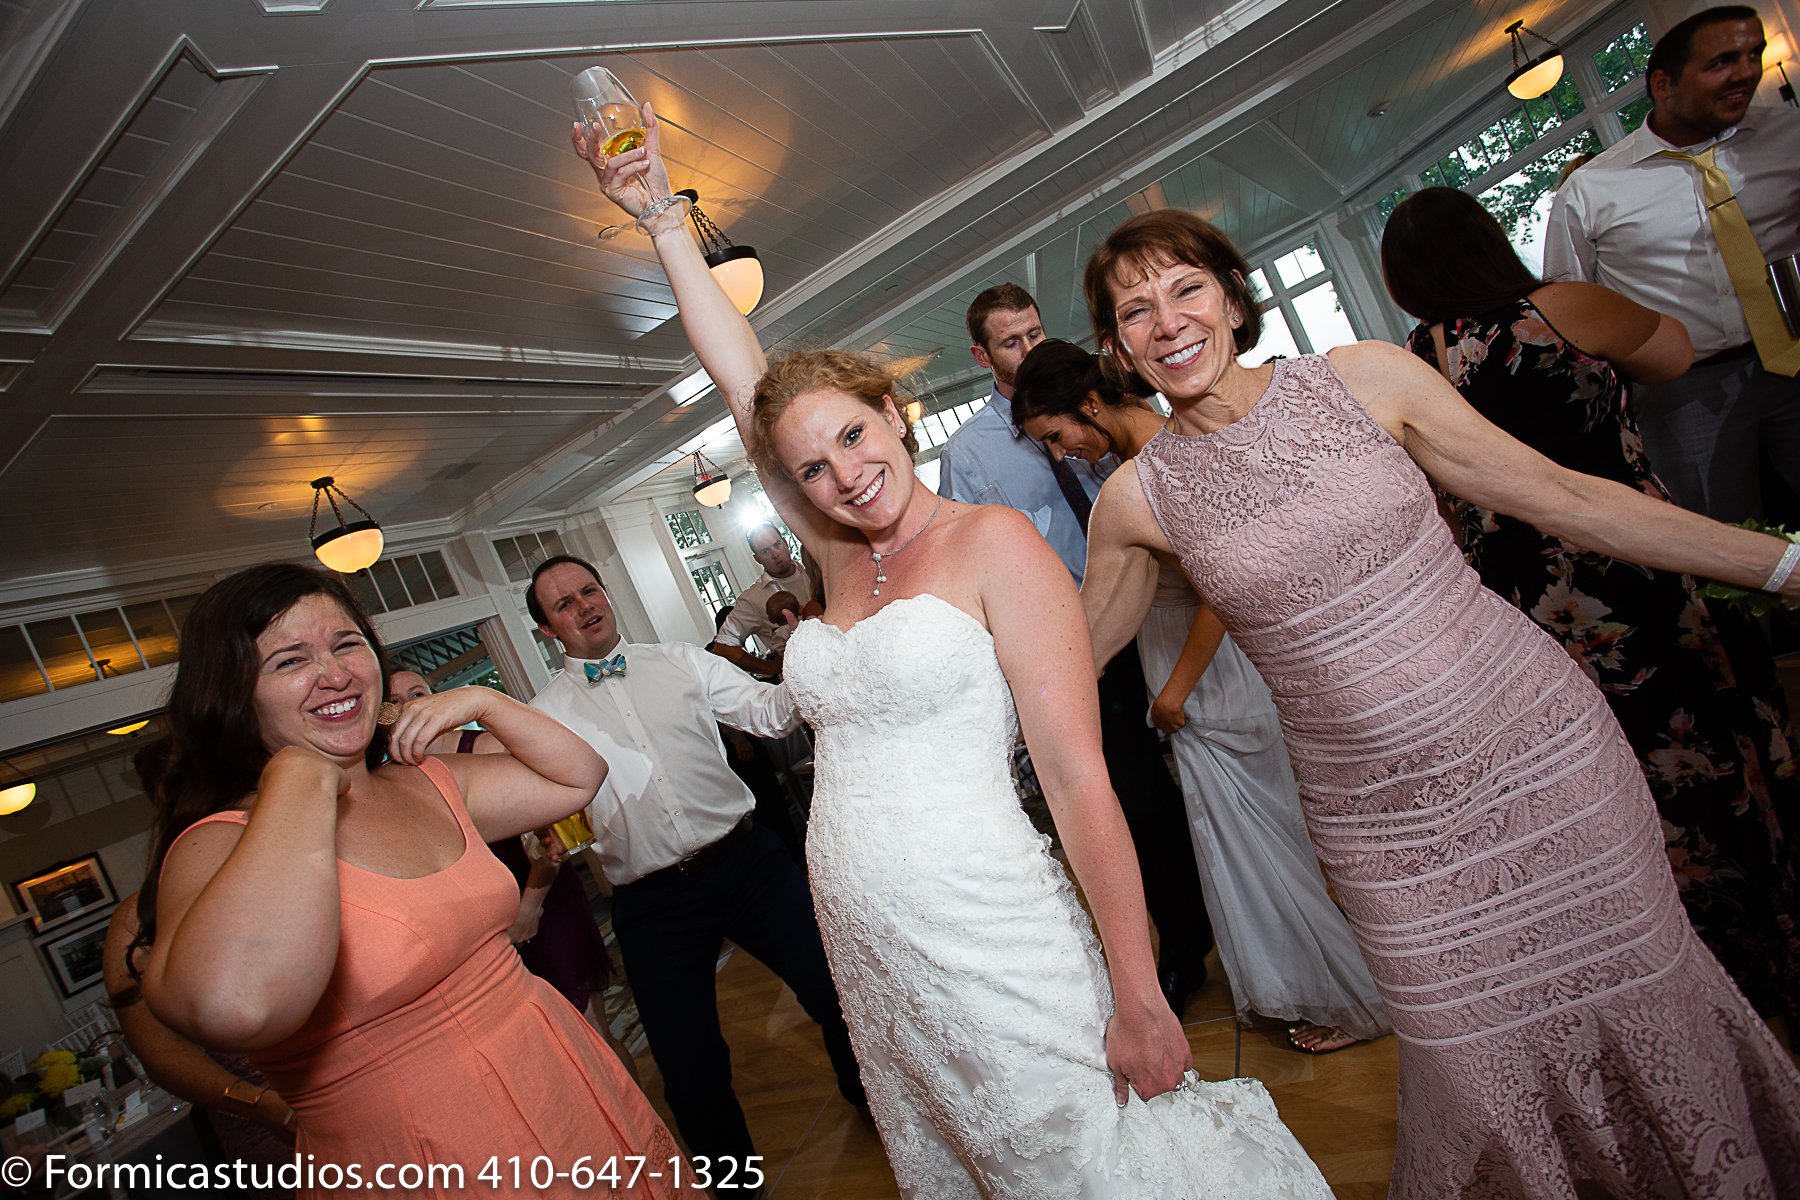 bride dancing with glass of wine in the air